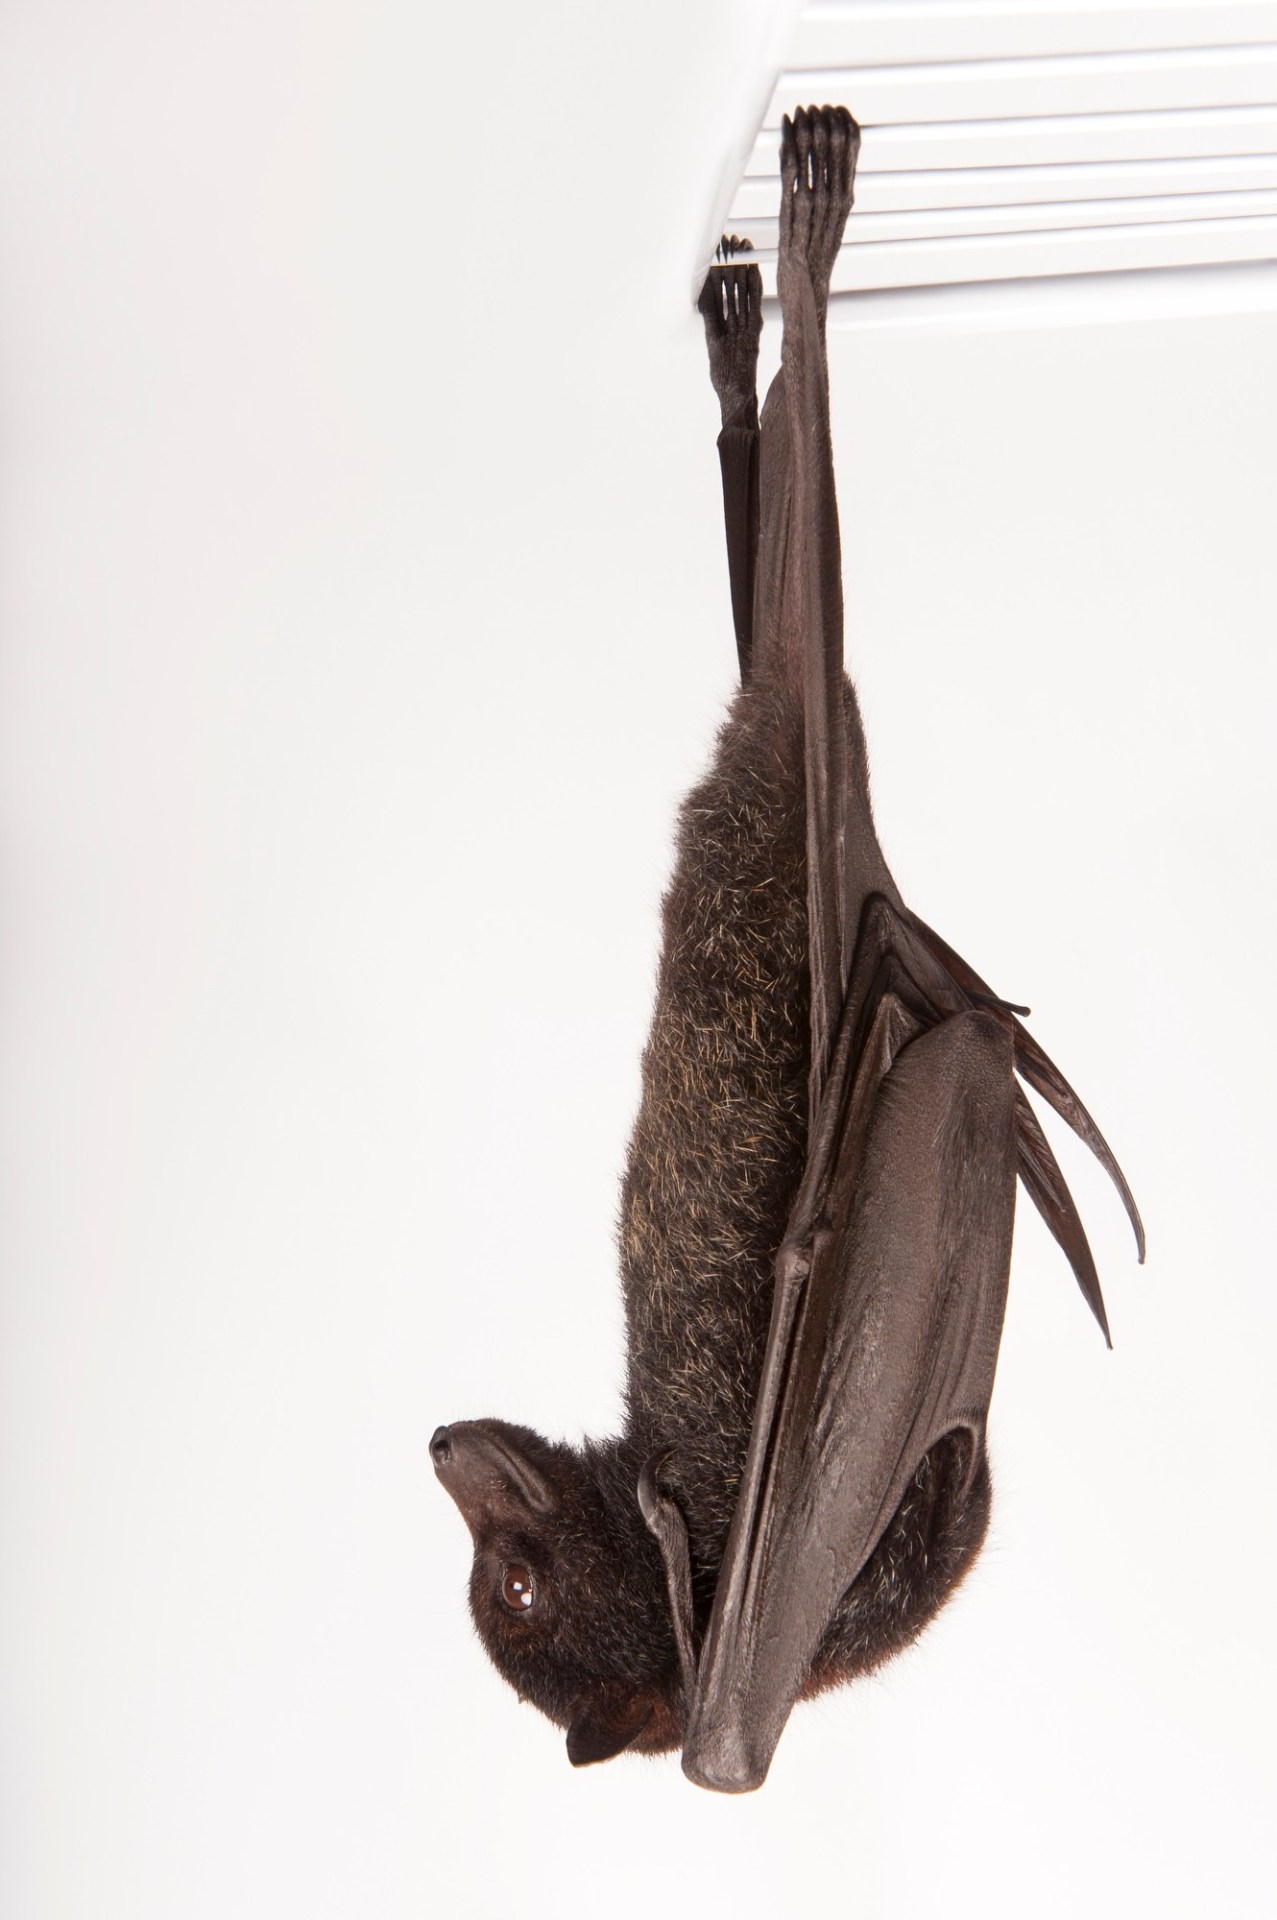 A black flying fox (Pteropus alecto) at the Australian Bat Clinic. Bats act as pollinators and seed dispensers, however bats are in serious decline around Australia largely due to entanglement in fruit tree netting.